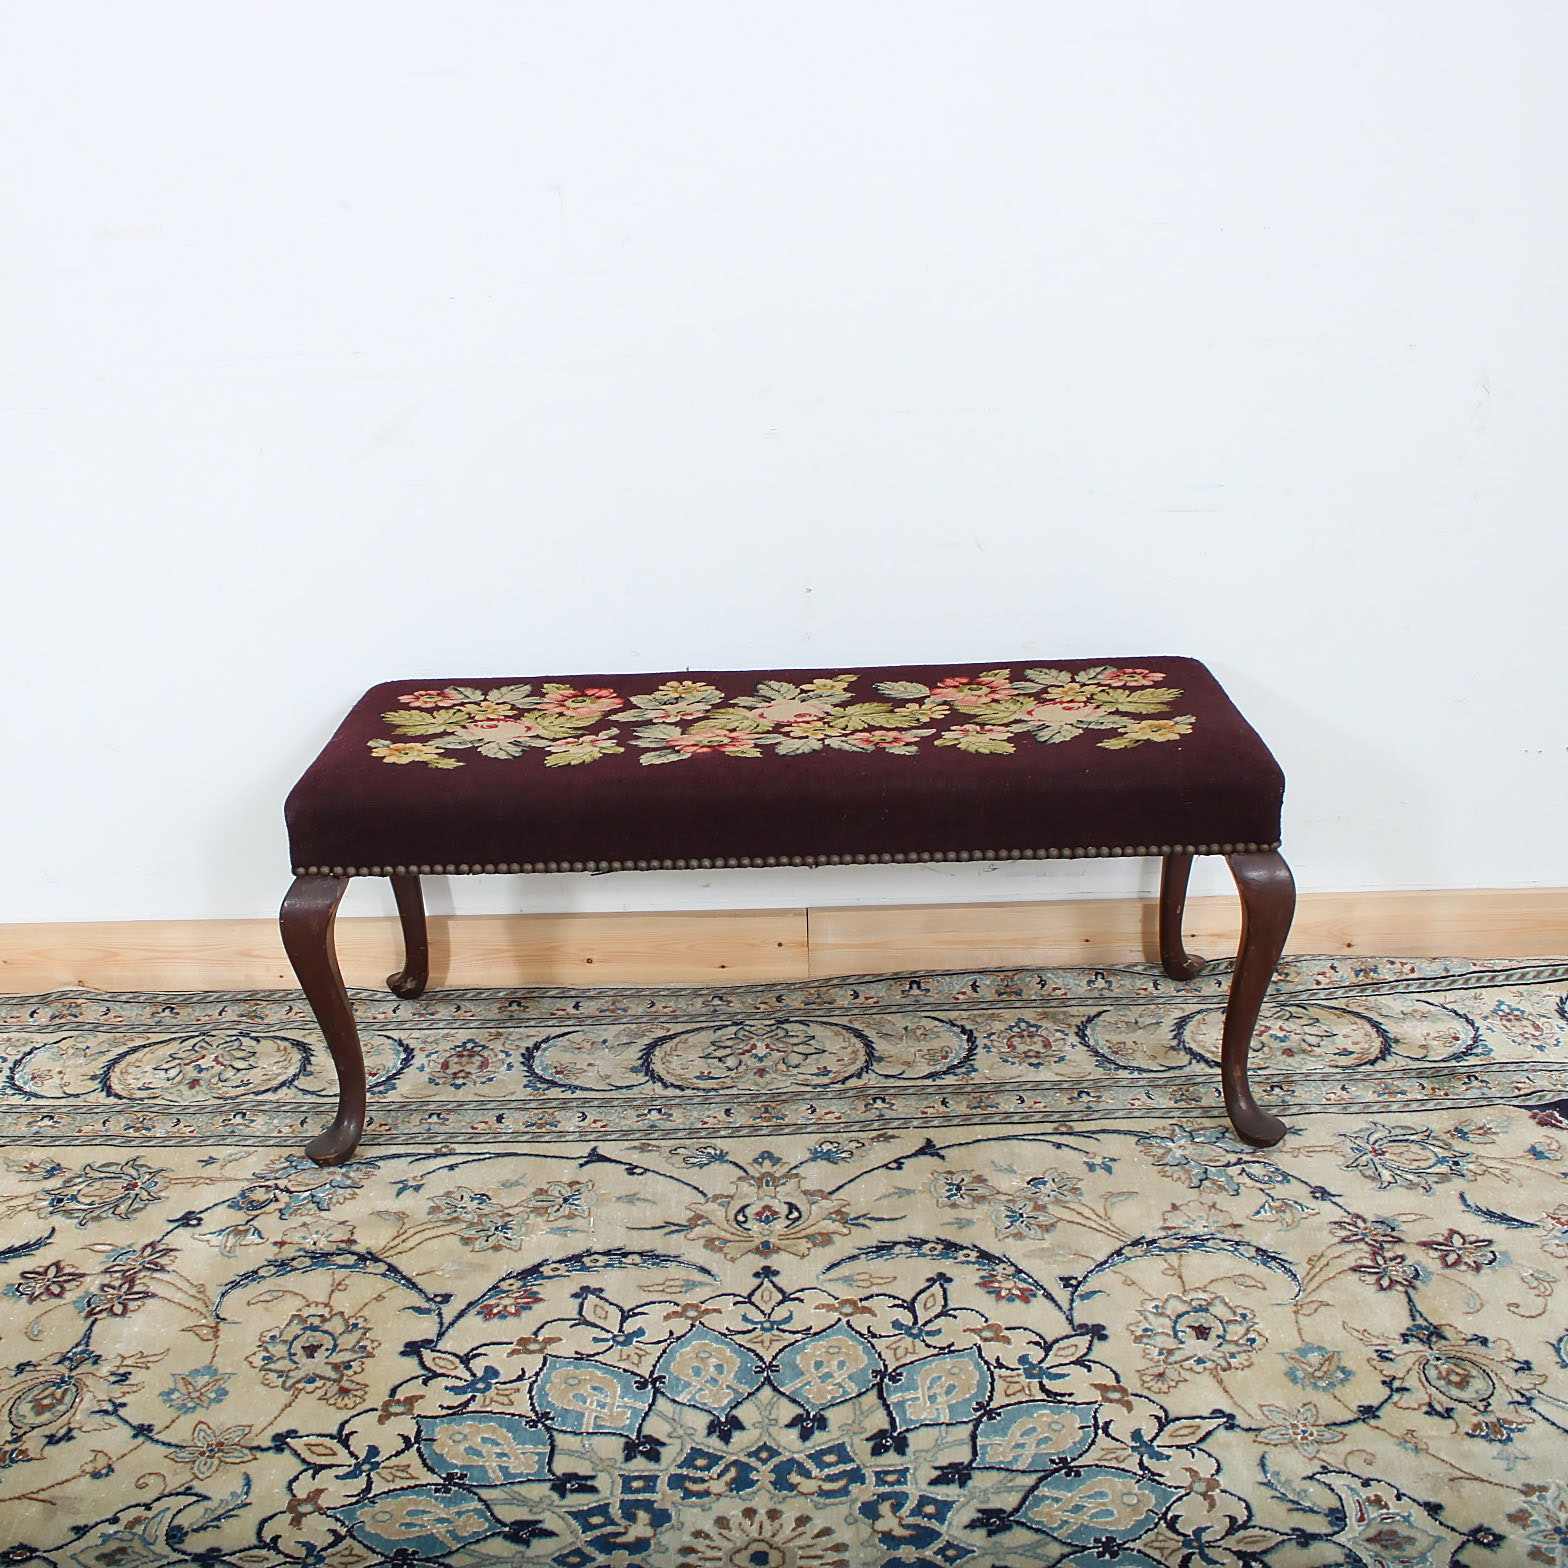 Vintage Queen Anne Style Needlepoint Bench